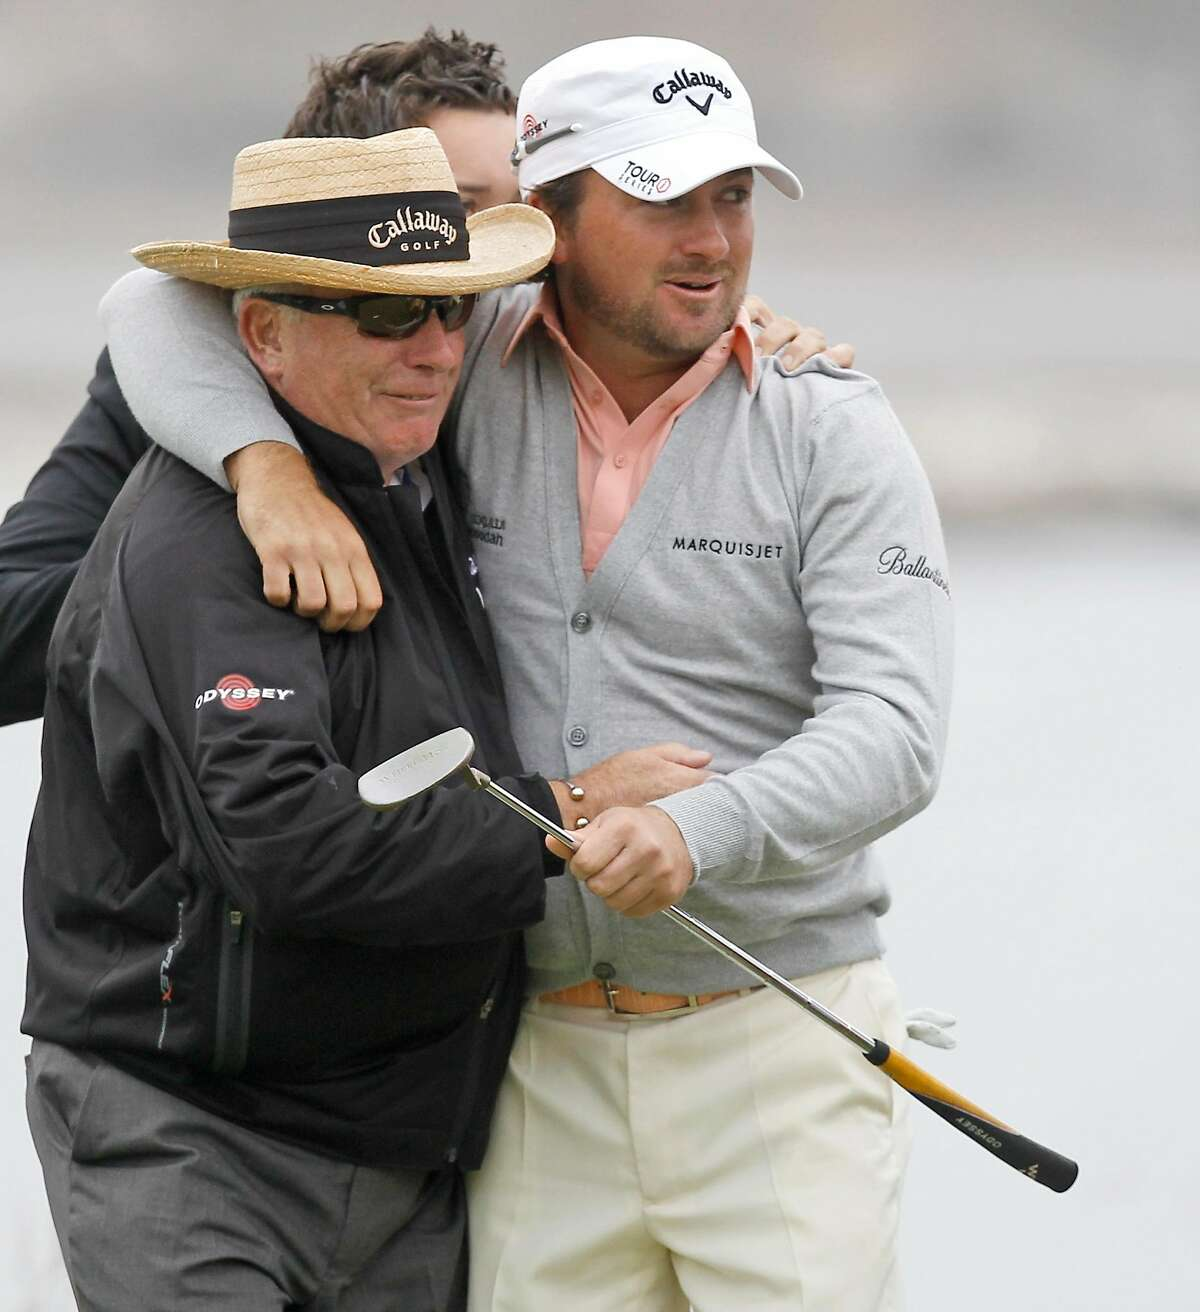 Graeme McDowell of Northern Ireland hugs his father Ken on the 18th green after winning the U.S. Open golf tournament Sunday, June 20, 2010, at the Pebble Beach Golf Links in Pebble Beach, Calif. (AP Photo/Chris Carlson)